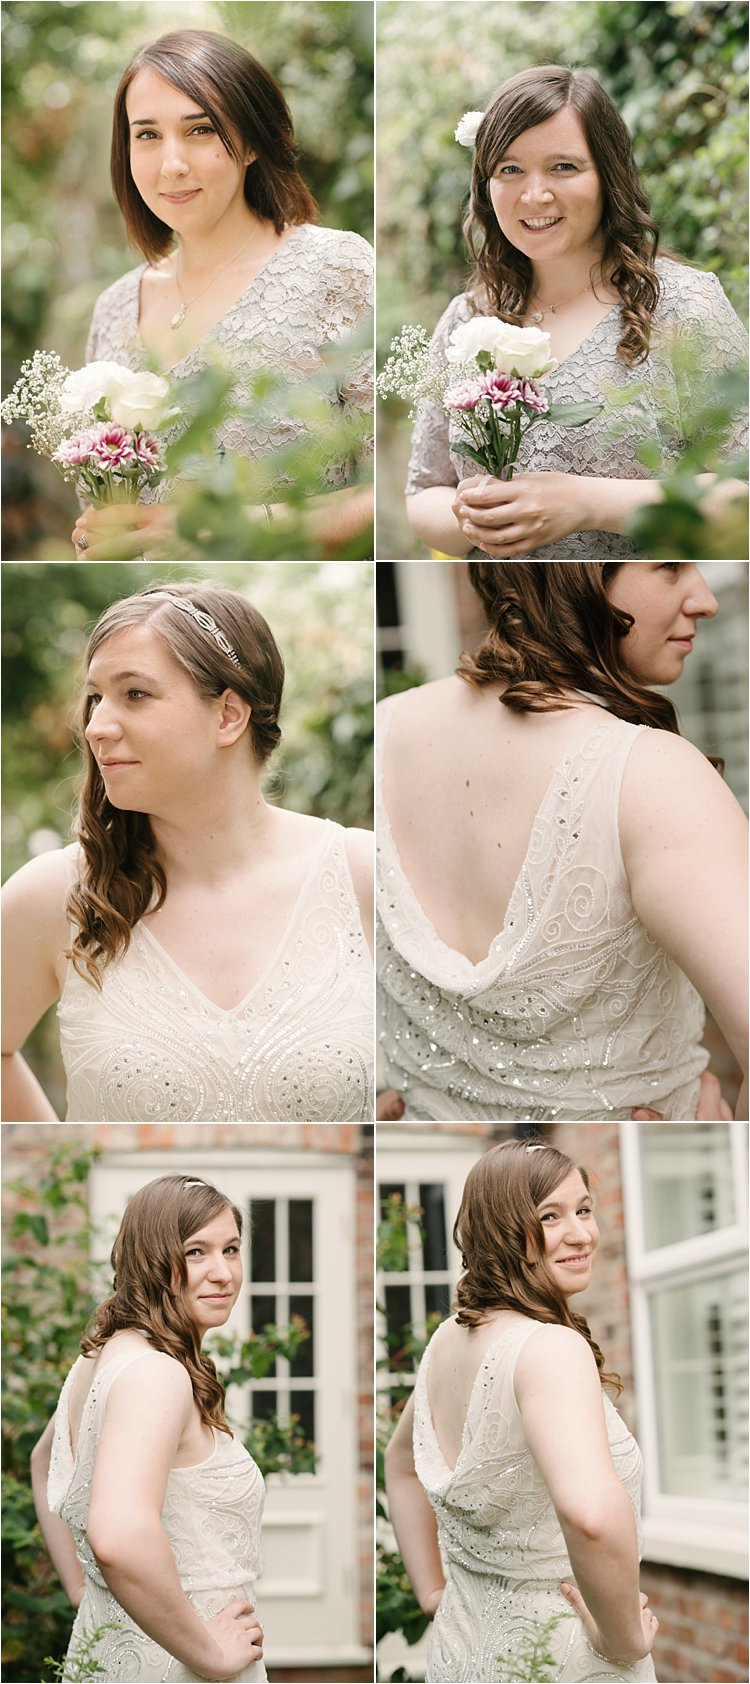 hospitium-york-wedding-disney-theme-vintage-dress-lily-sawyer-photo_0000